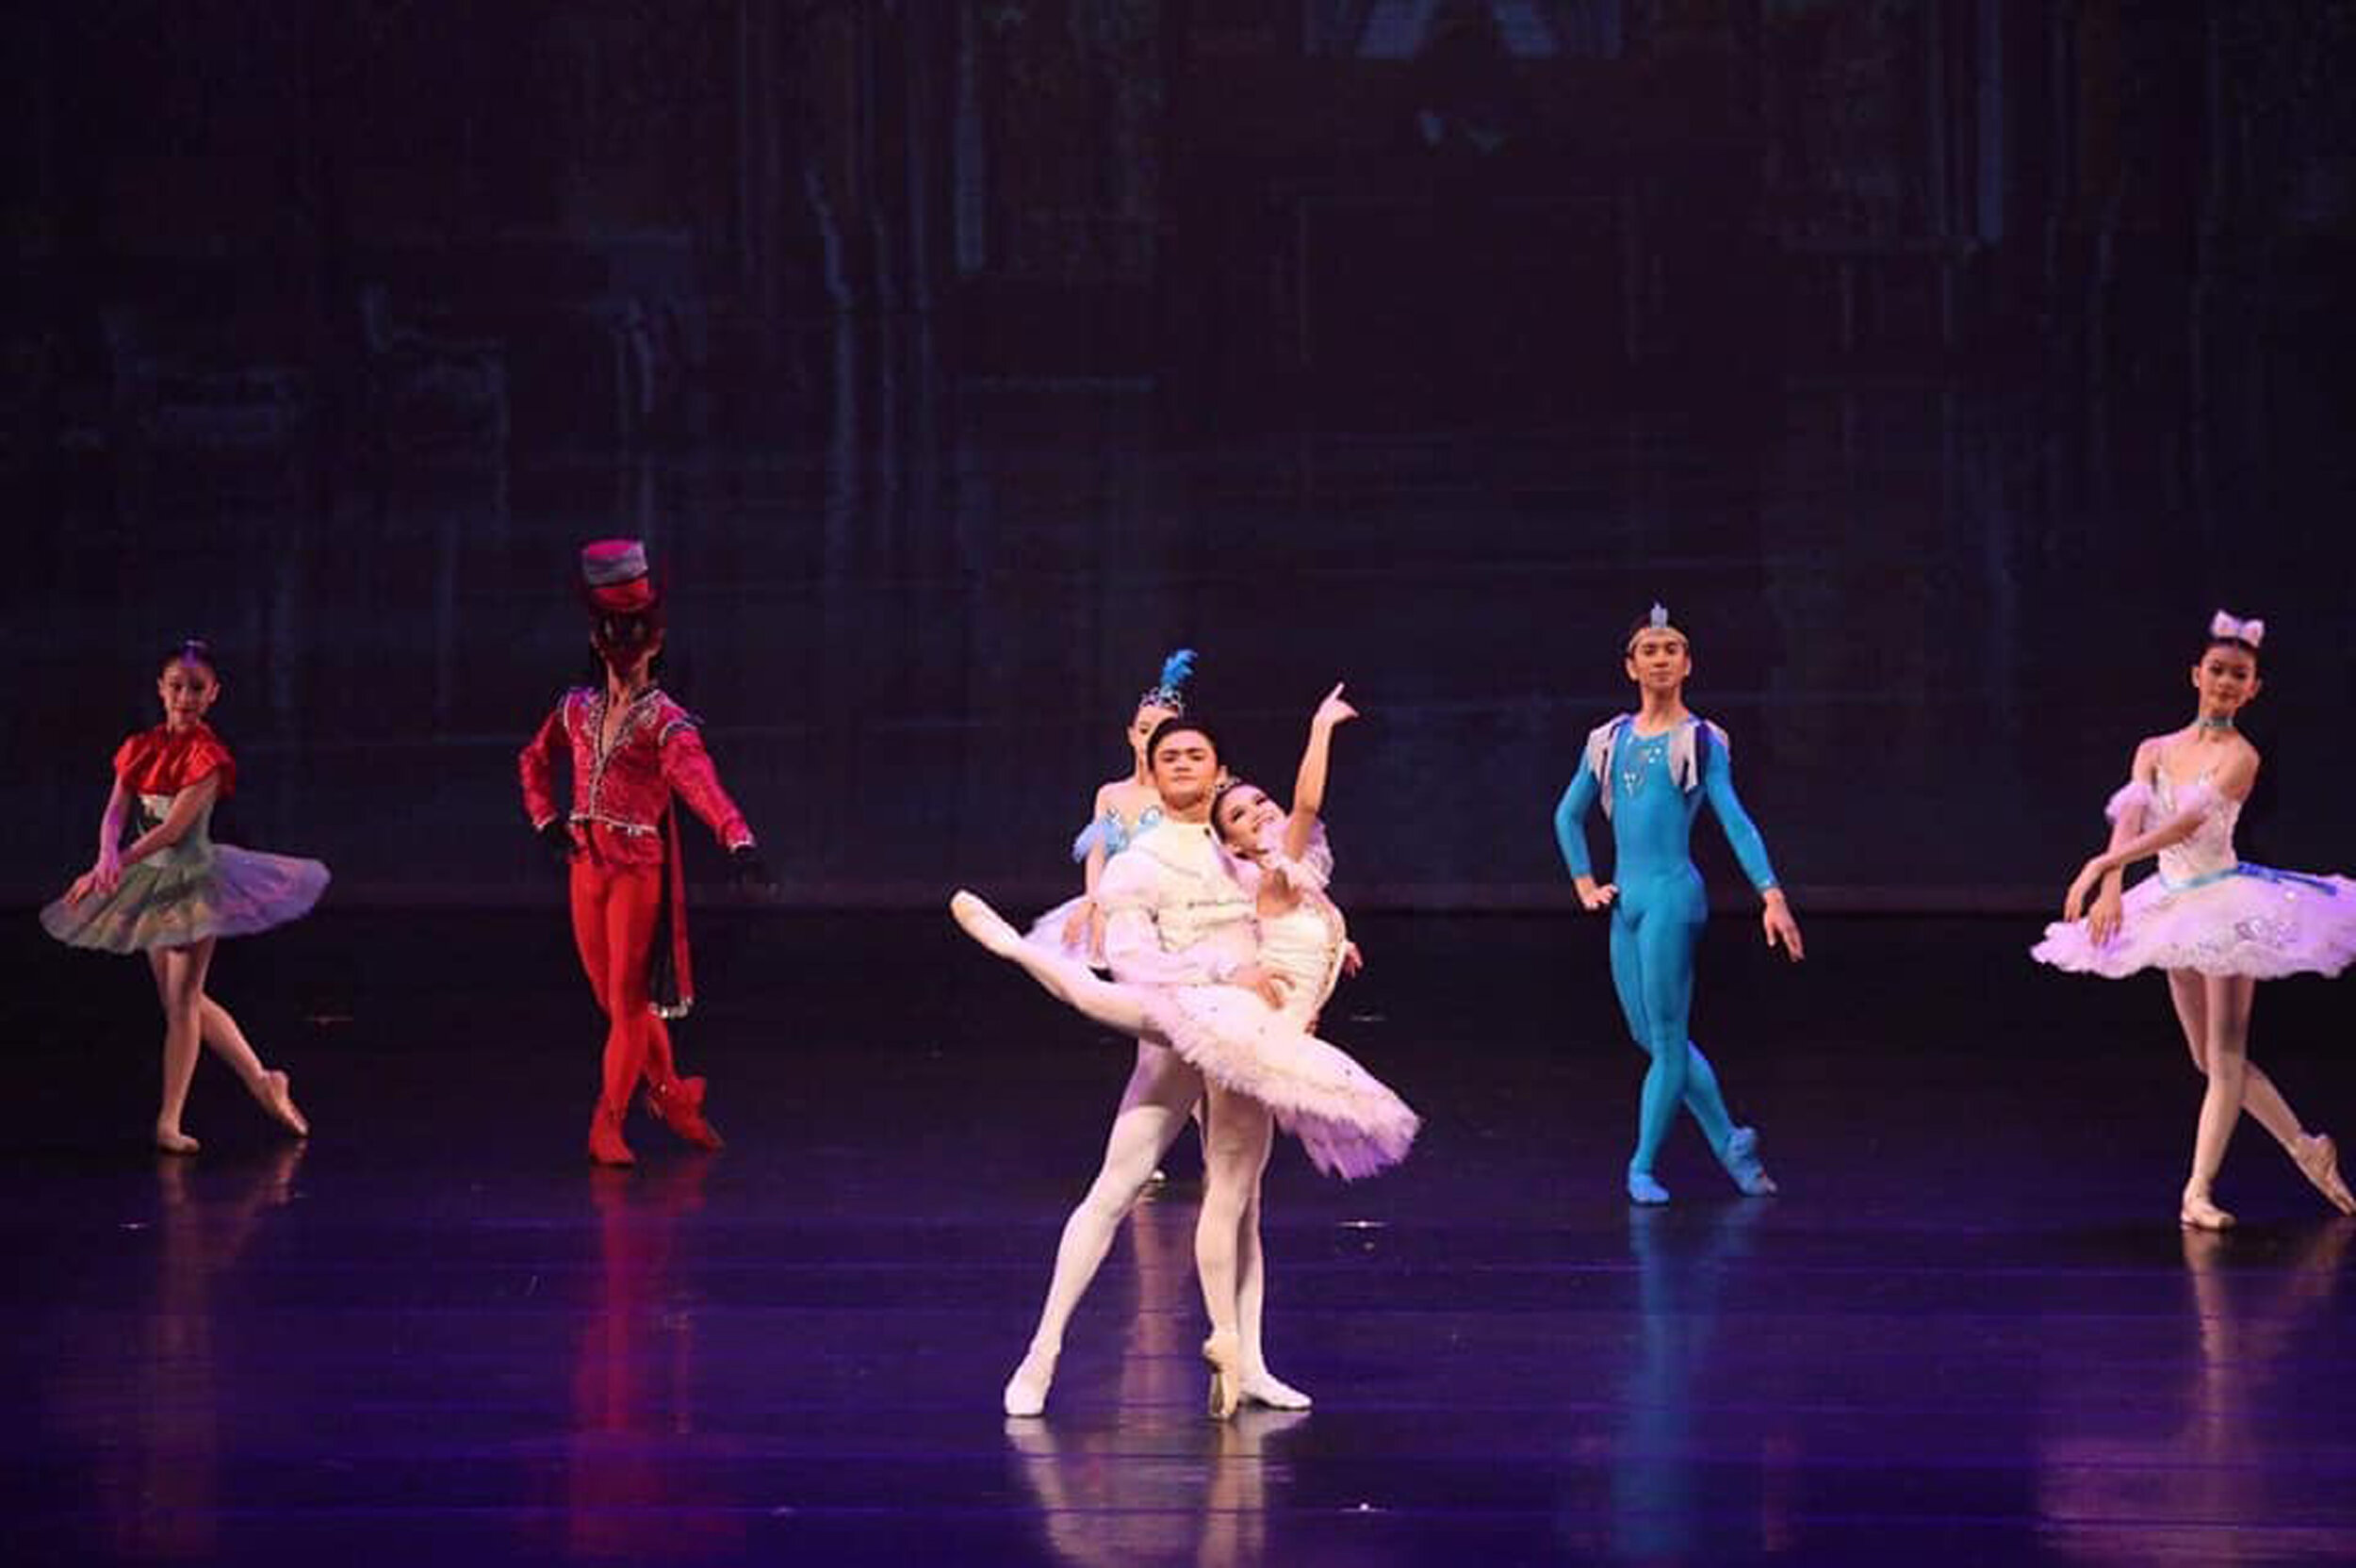 Joshua Enciso and Shaira Comeros in an excerpt of  Sleeping Beauty,  with the supporting cast